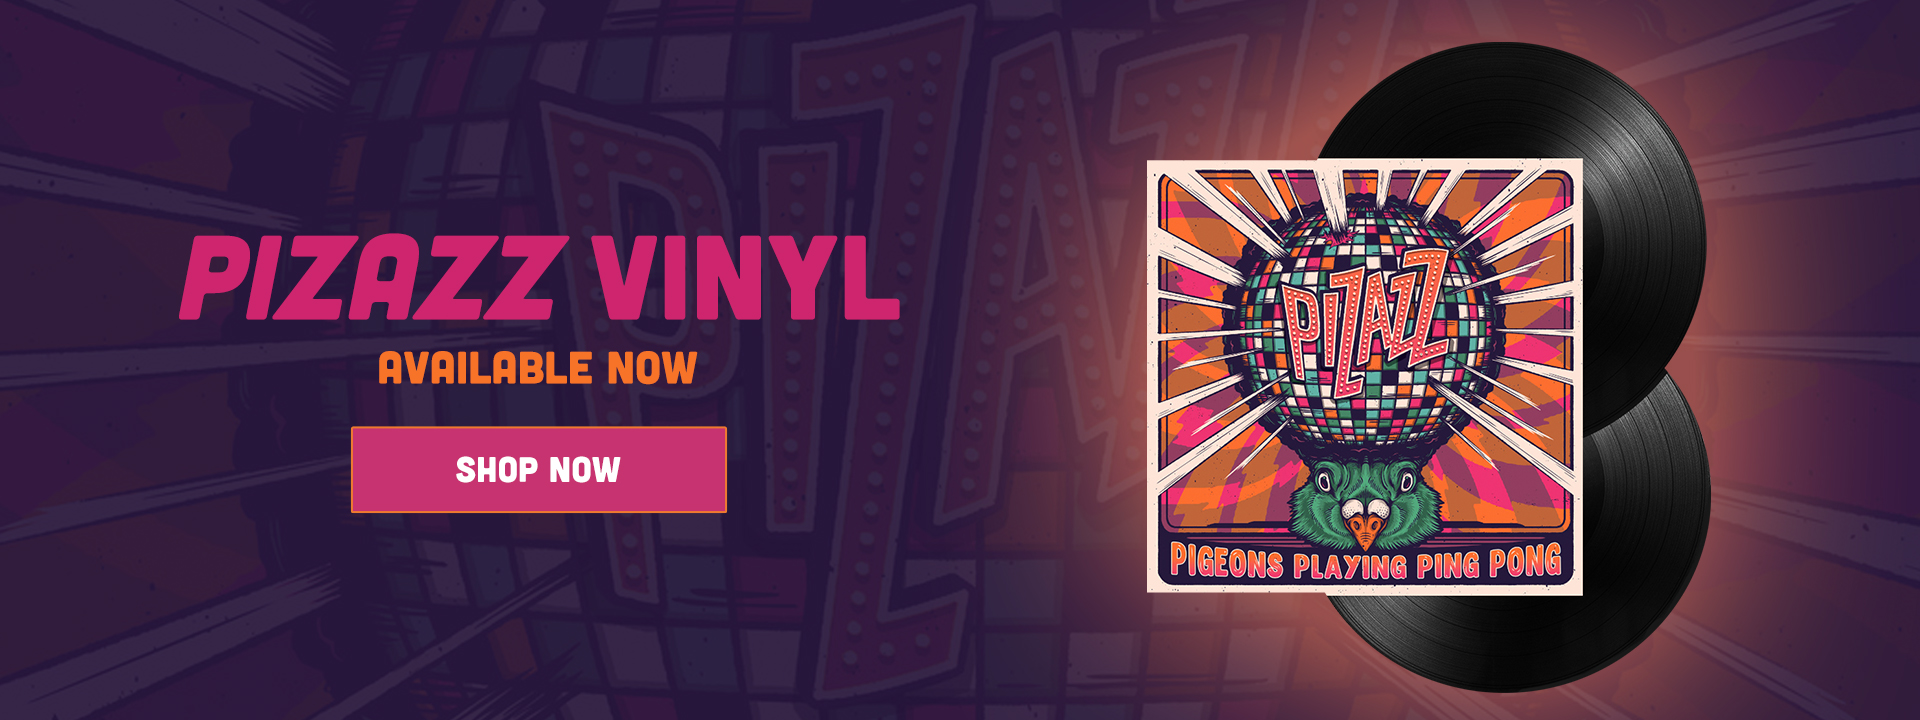 Pigeons Playing Ping Pong - Pizazz Vinyl Now Available